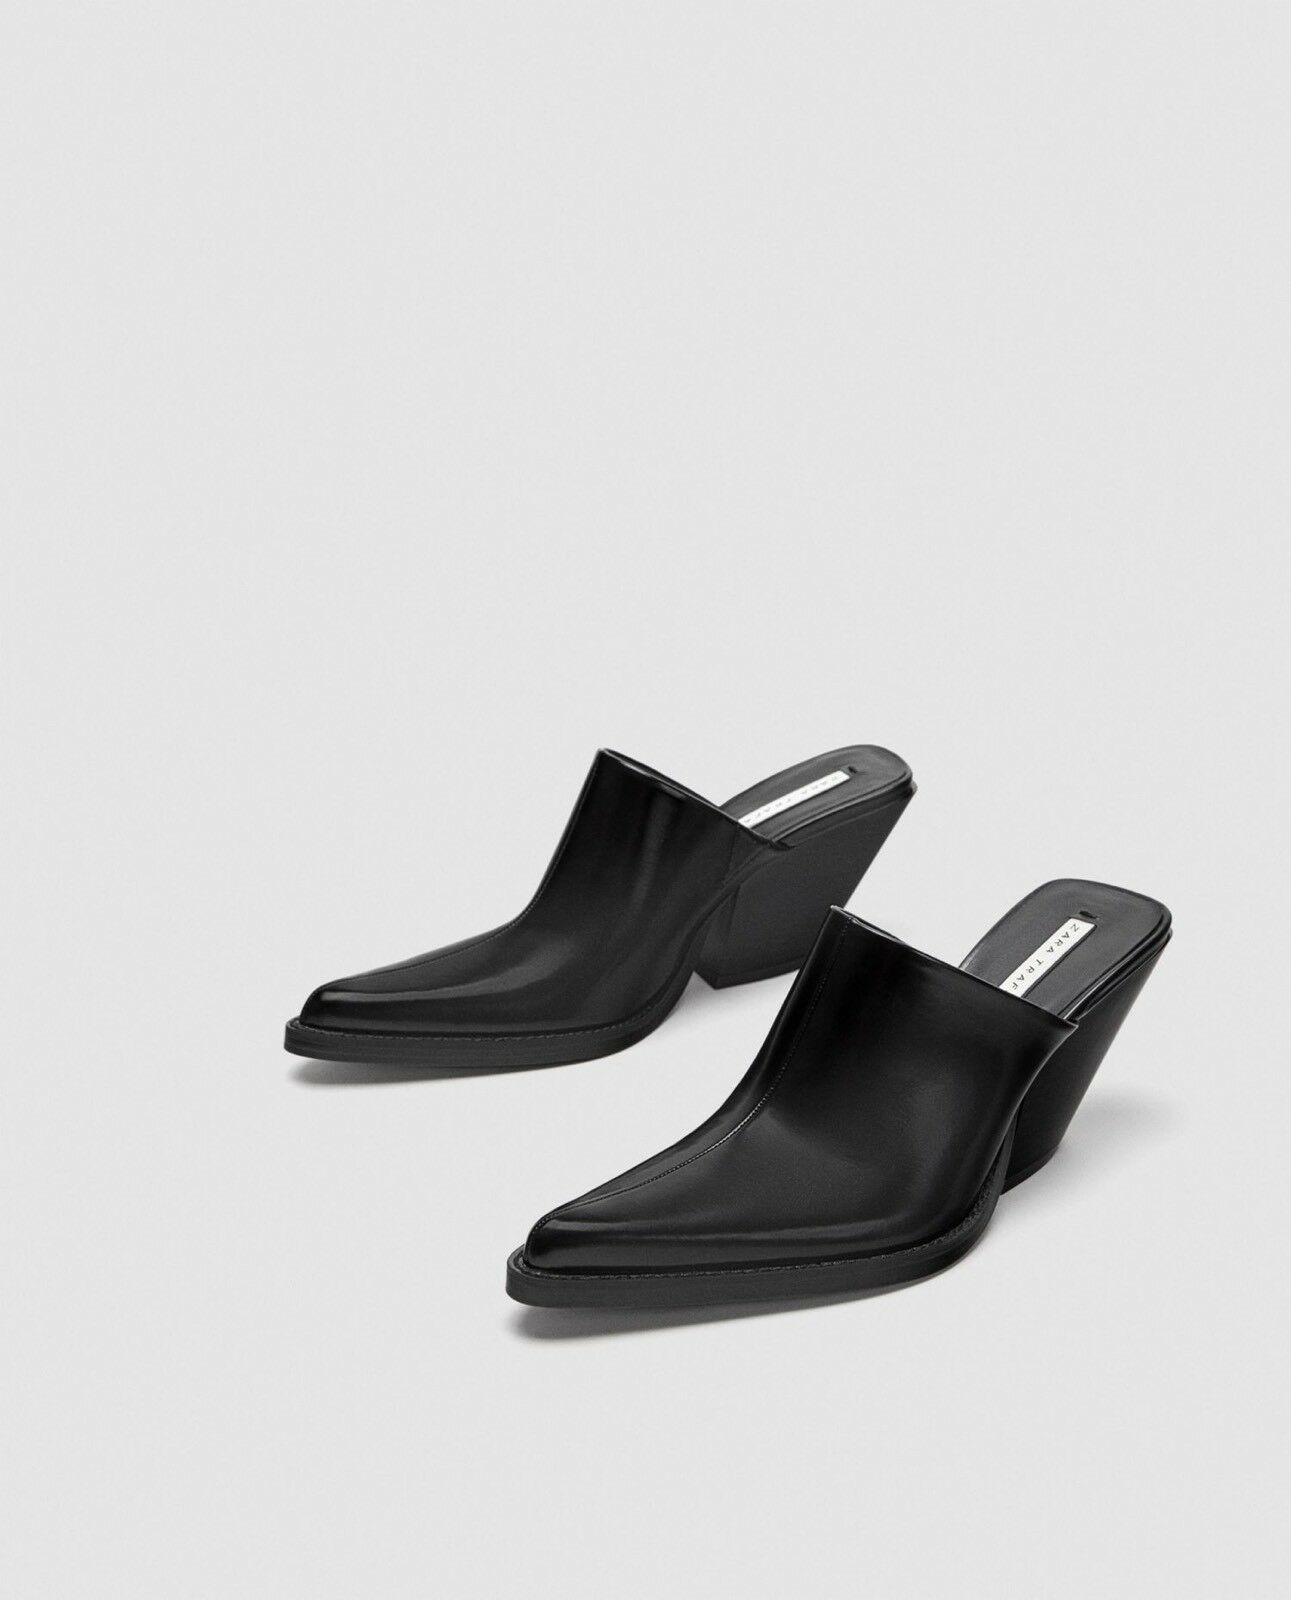 Zara New New New SS18 High Heel Clogs Black Size 6.5 NWT d2ead1